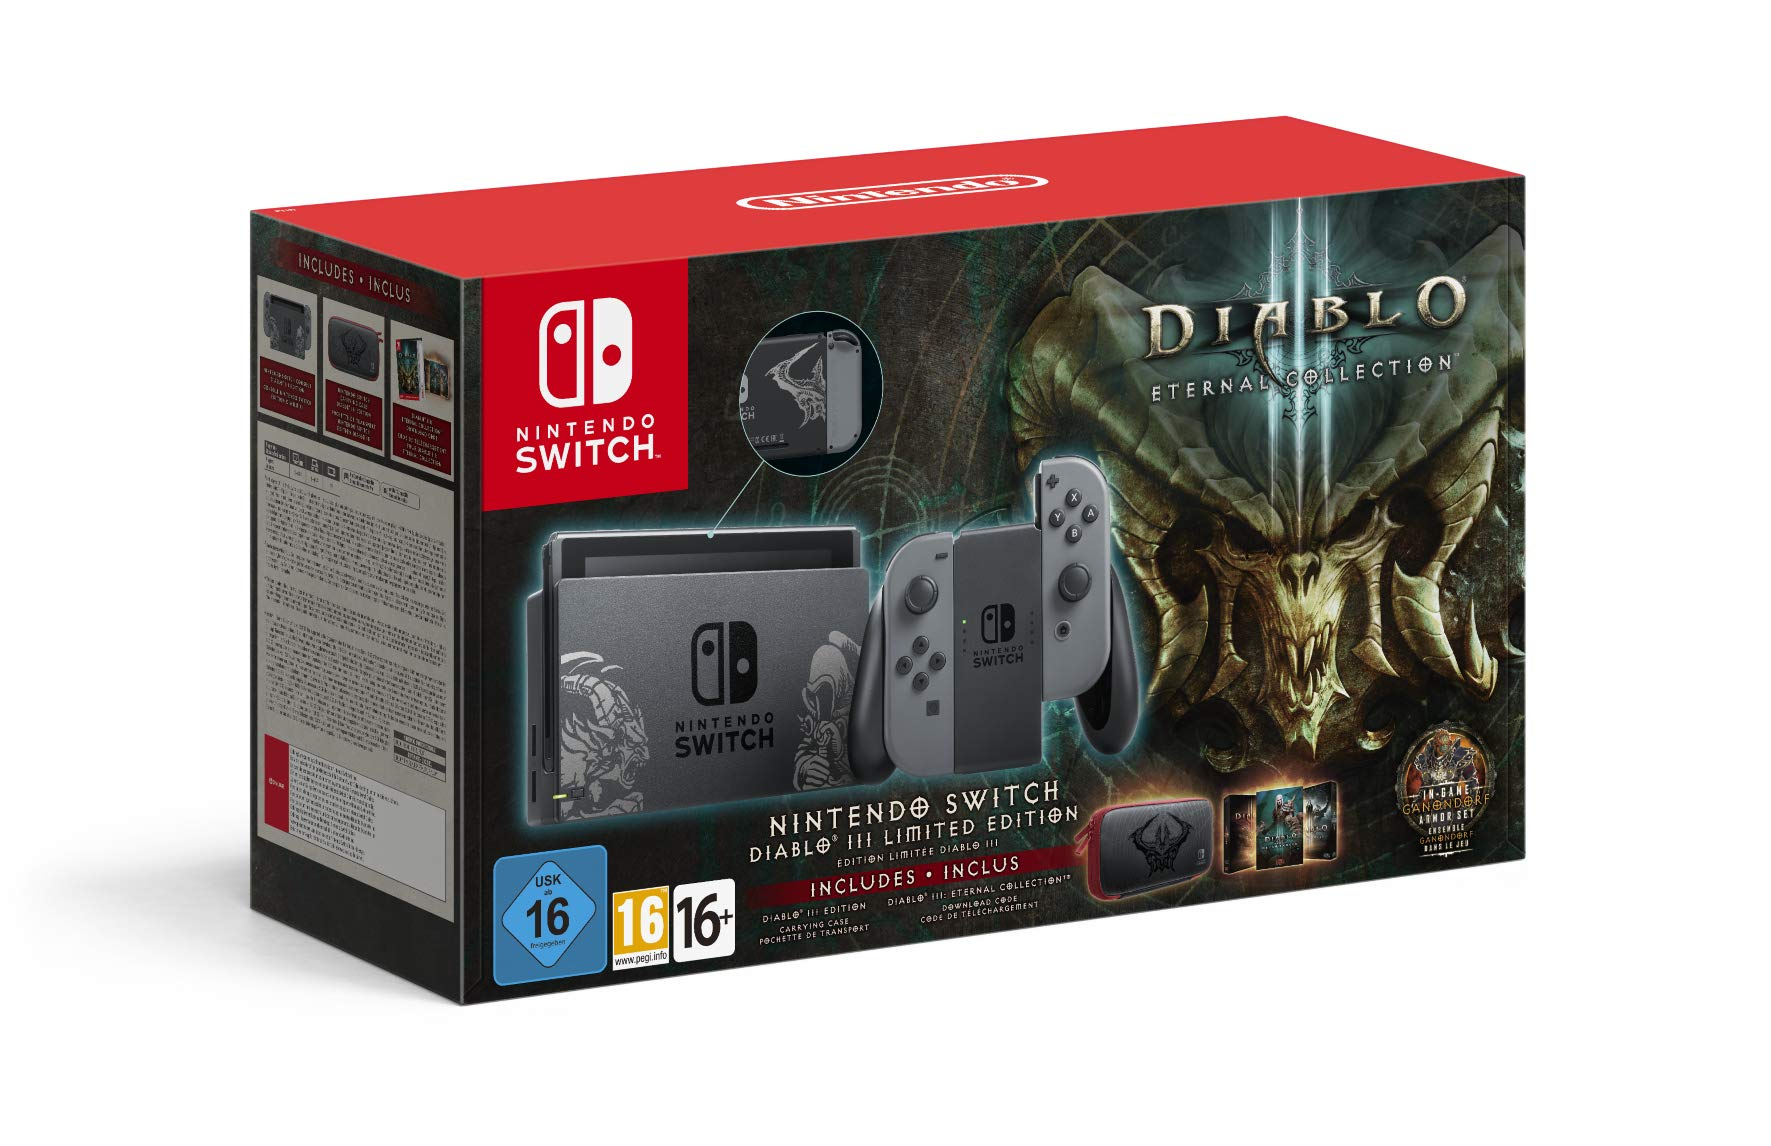 Nintendo Switch Diablo III Limited Edition Console with Diablo III ...